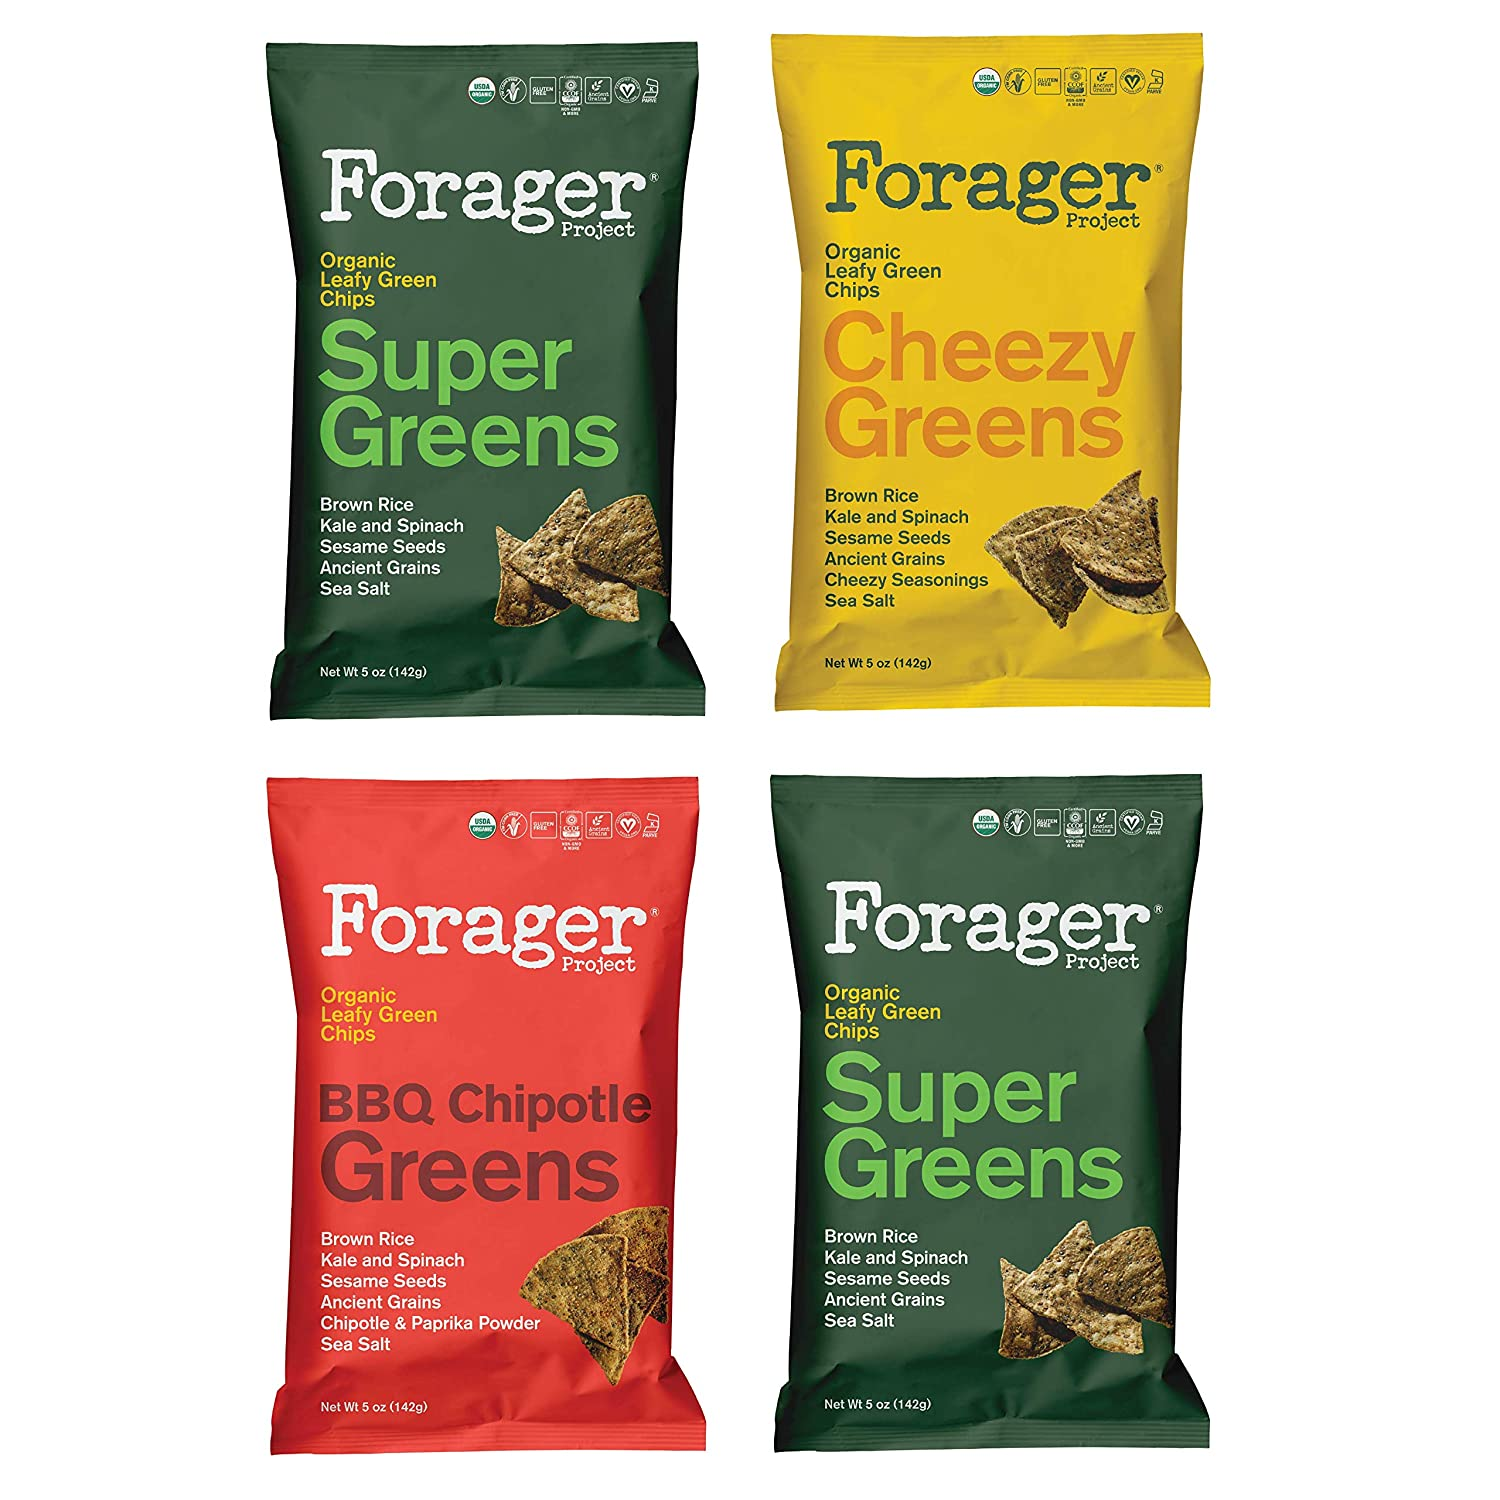 Forager Project Organic Leafy Green Chips, 4 Pack Variety - Corn & Gluten Free - Made with Kale & Spinach (Super Greens, Cheezy Greens, Chipotle BBQ)